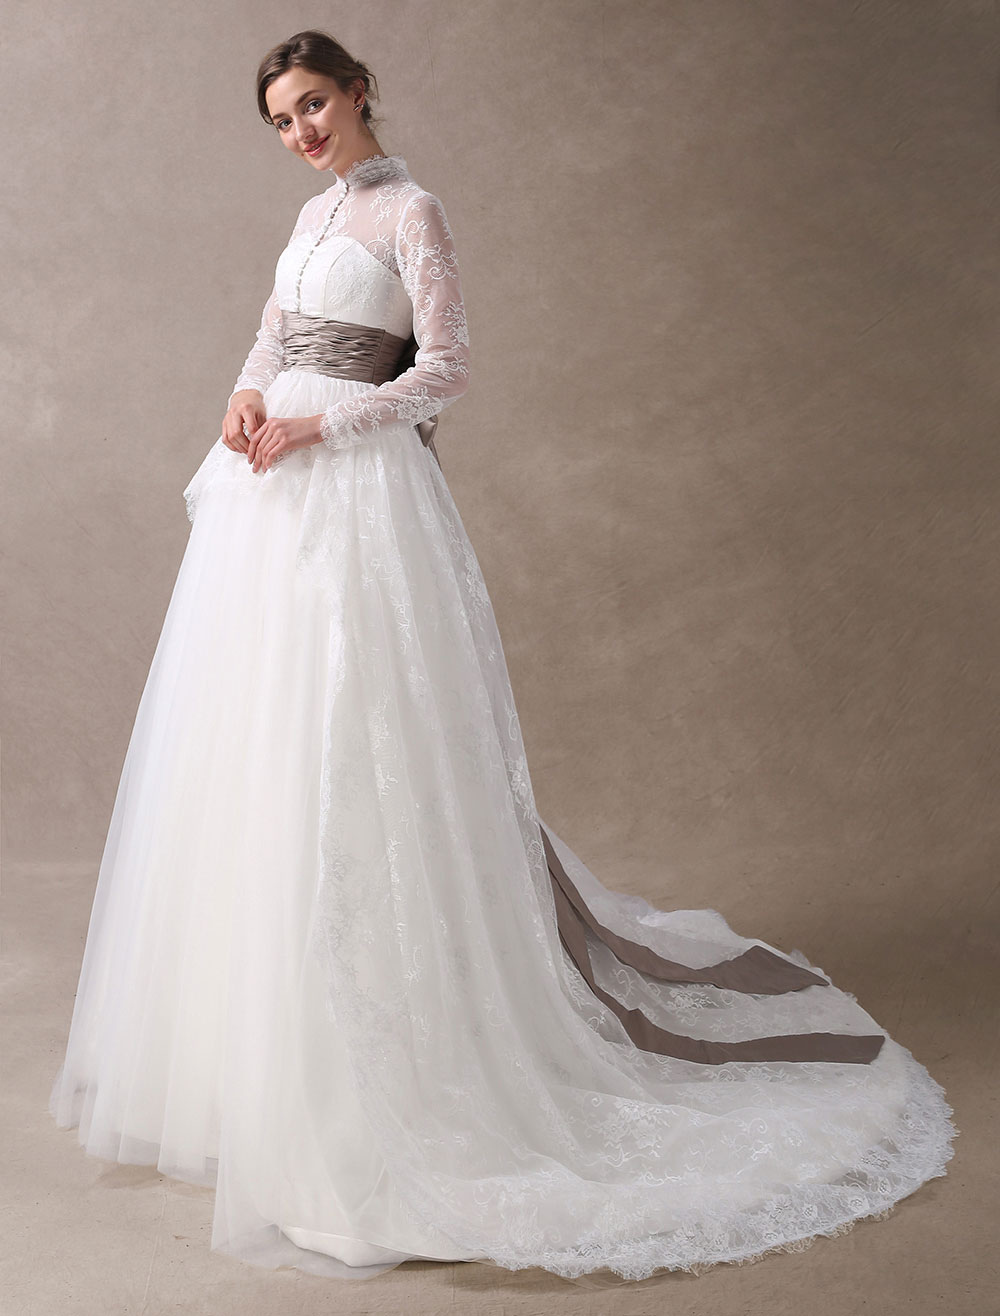 Princess Wedding Dresses Ball Gowns Lace Long Sleeve Bridal Dress High  Collar Buttons Illusion Ribbon Bow Ruched Sash Wedding Gowns With Train -  Milanoo.com